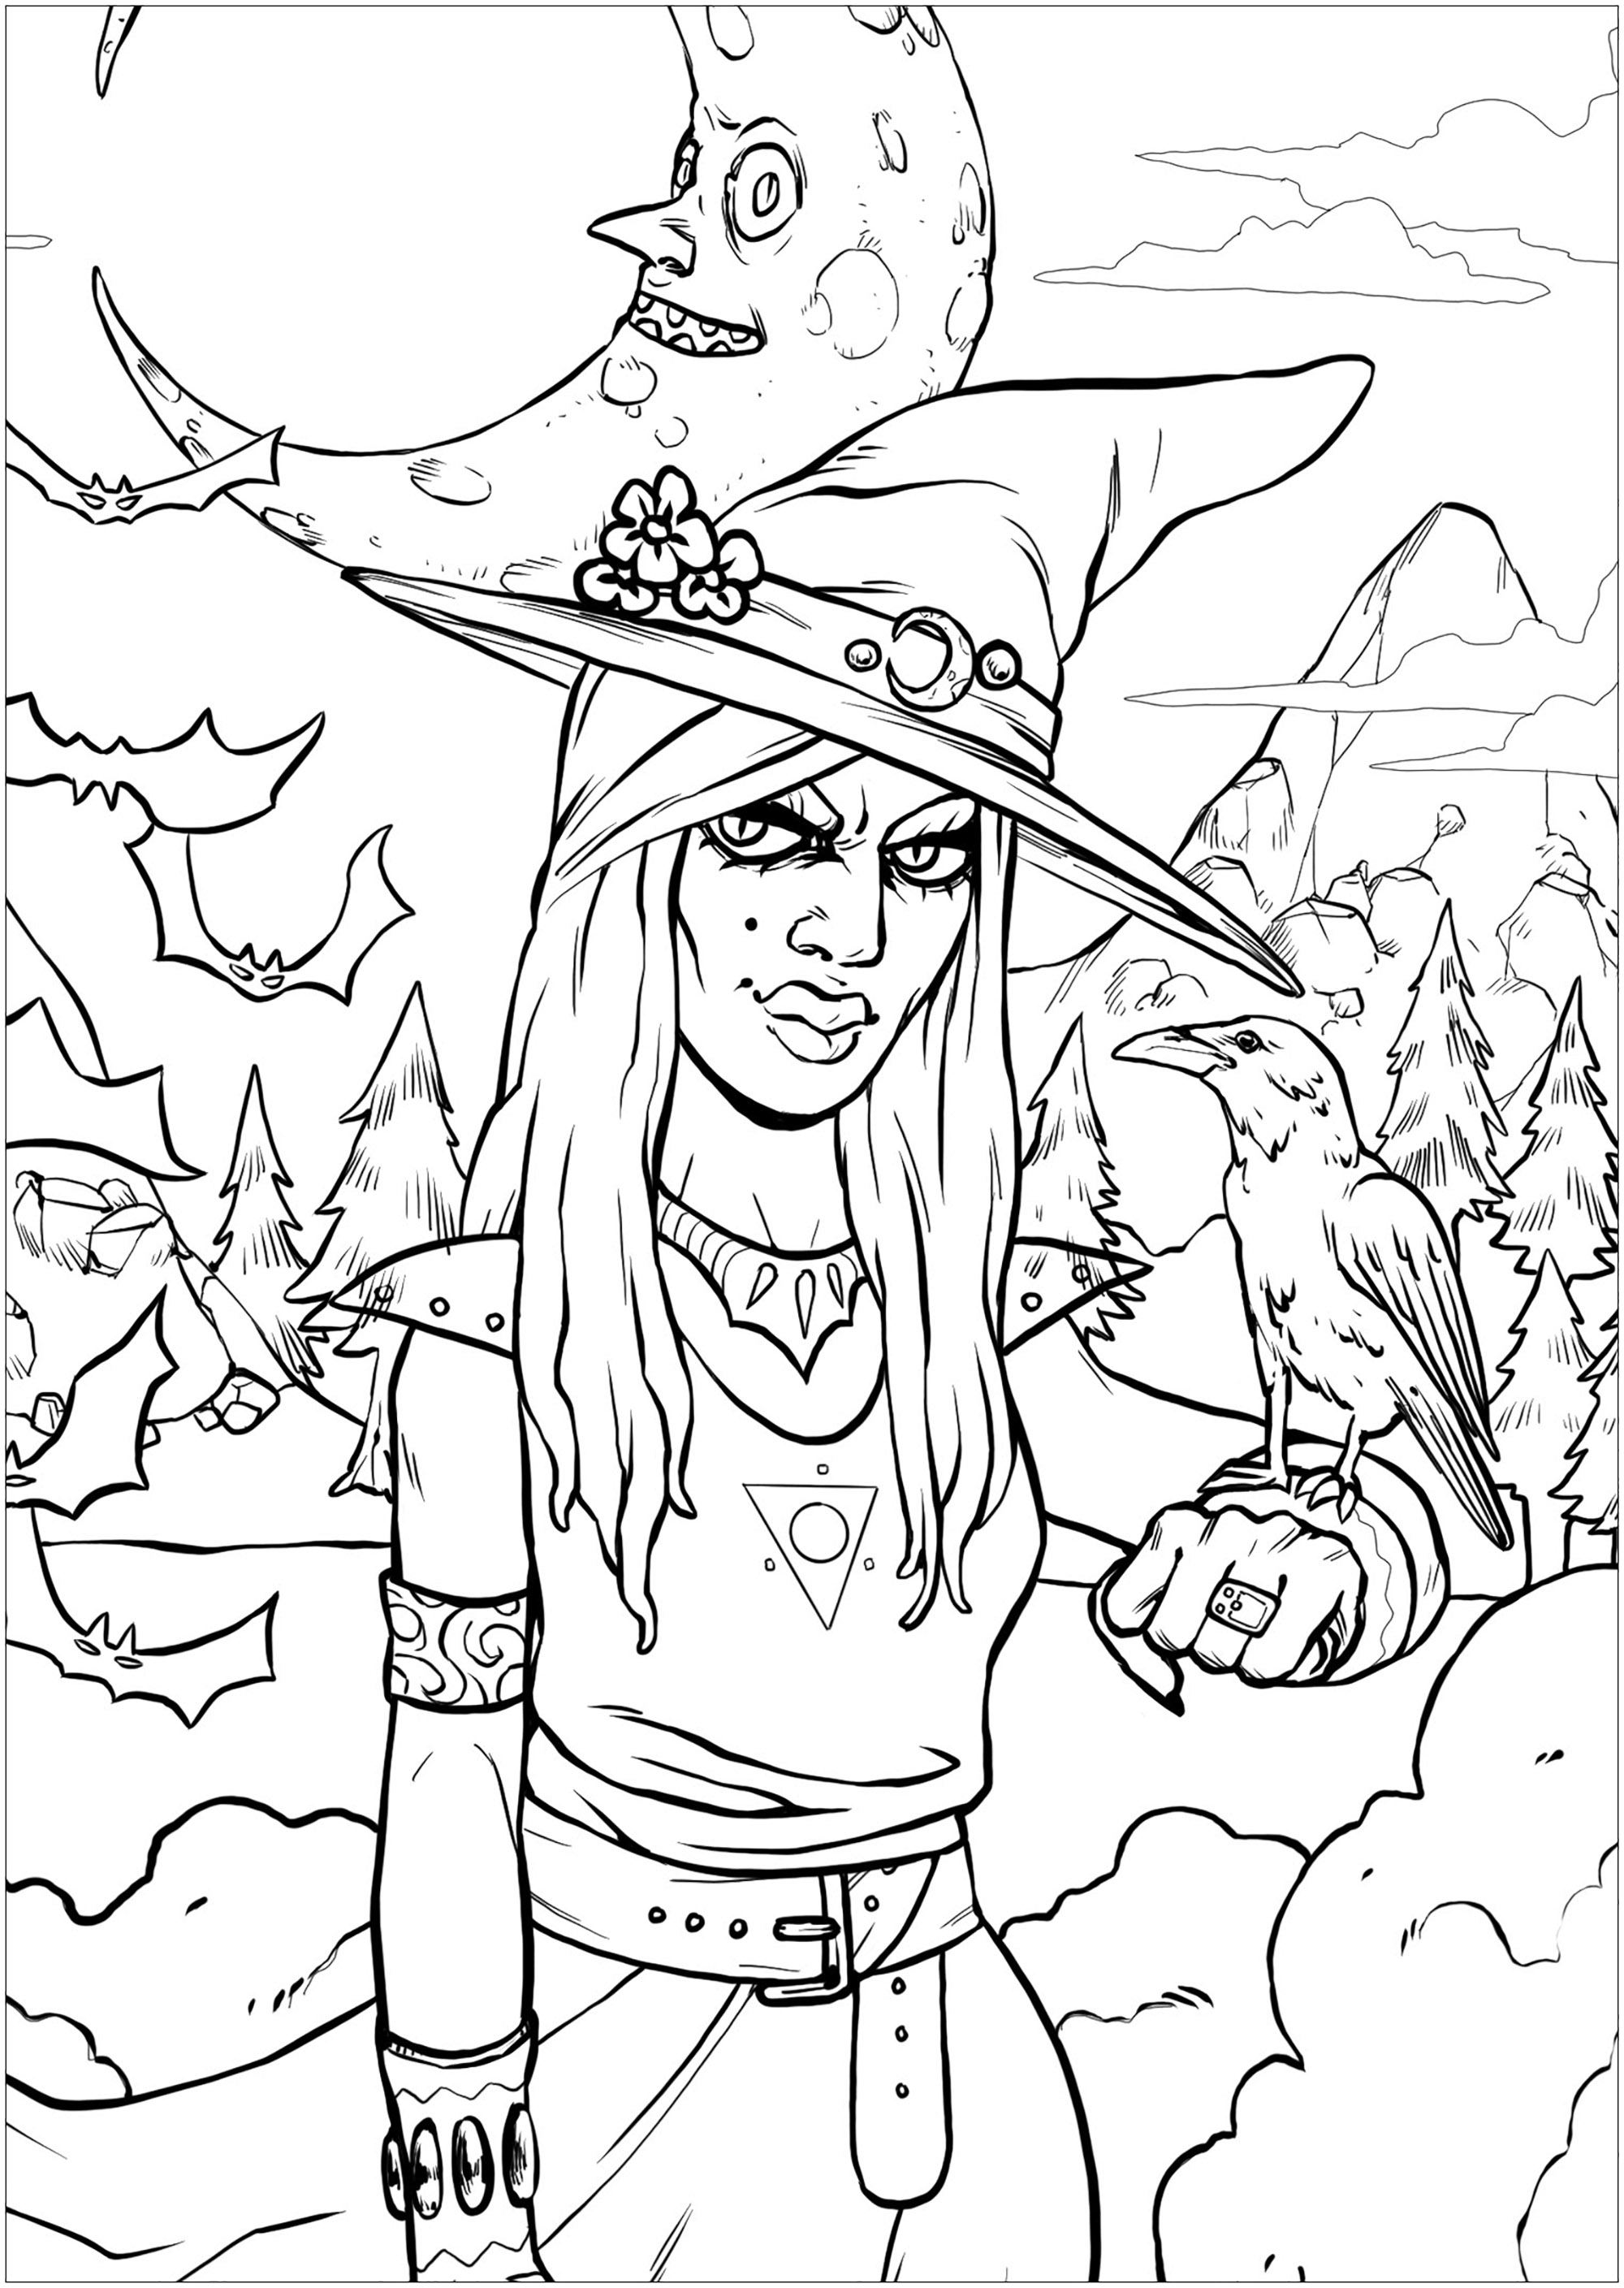 A bewitching witch and her raven, in a threatening landscape - second version